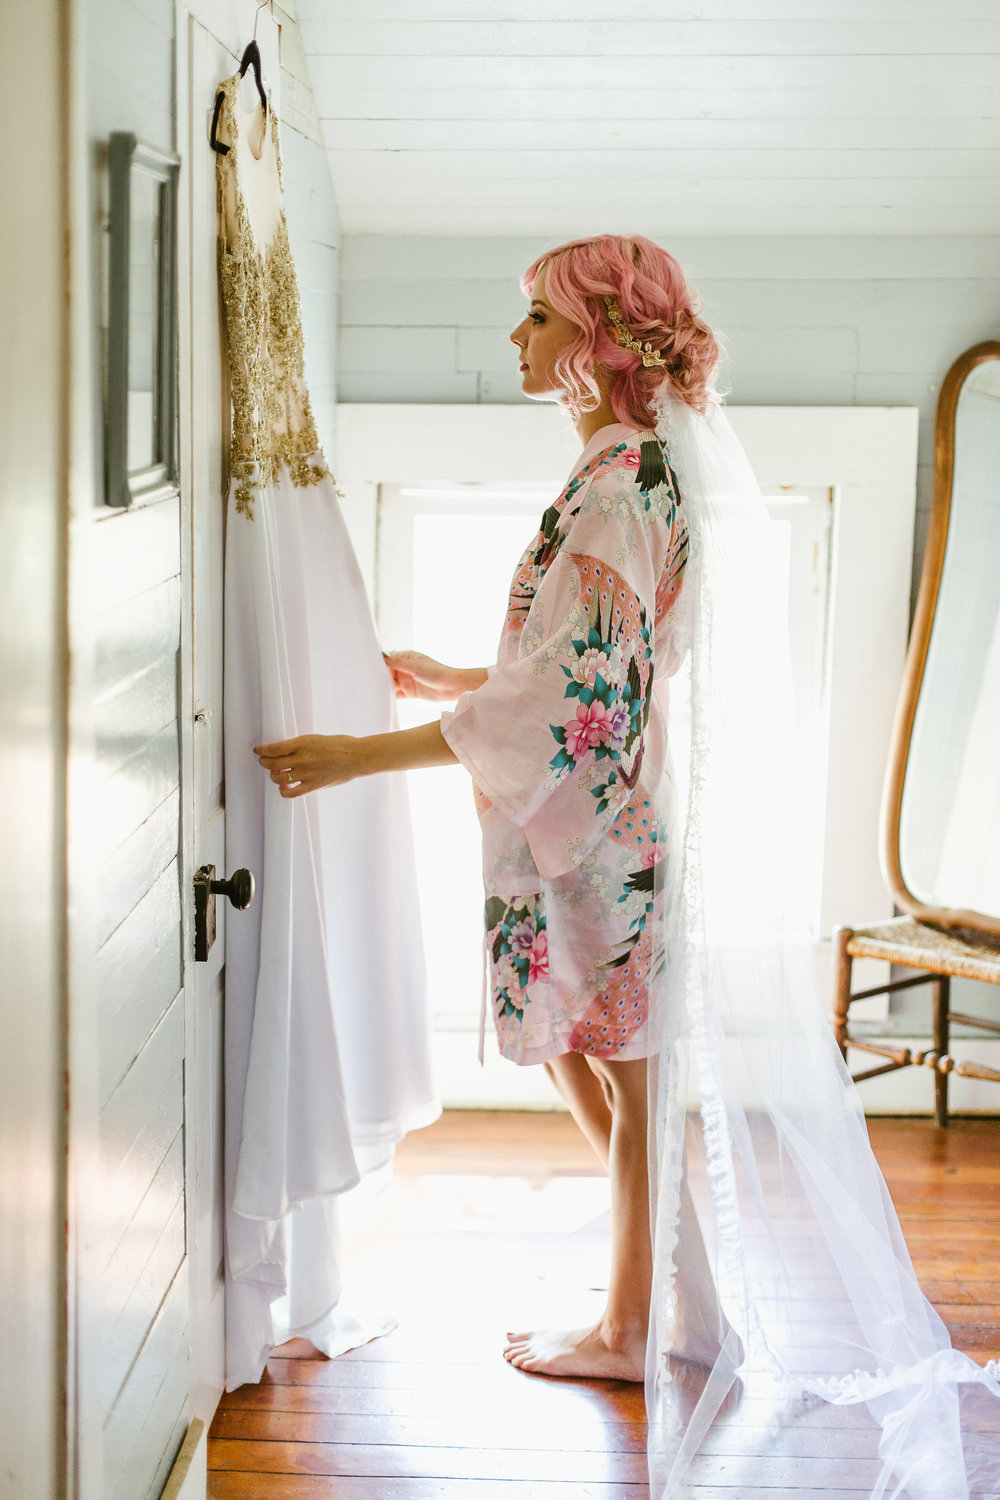 Bride with pink hair and gold wedding dress